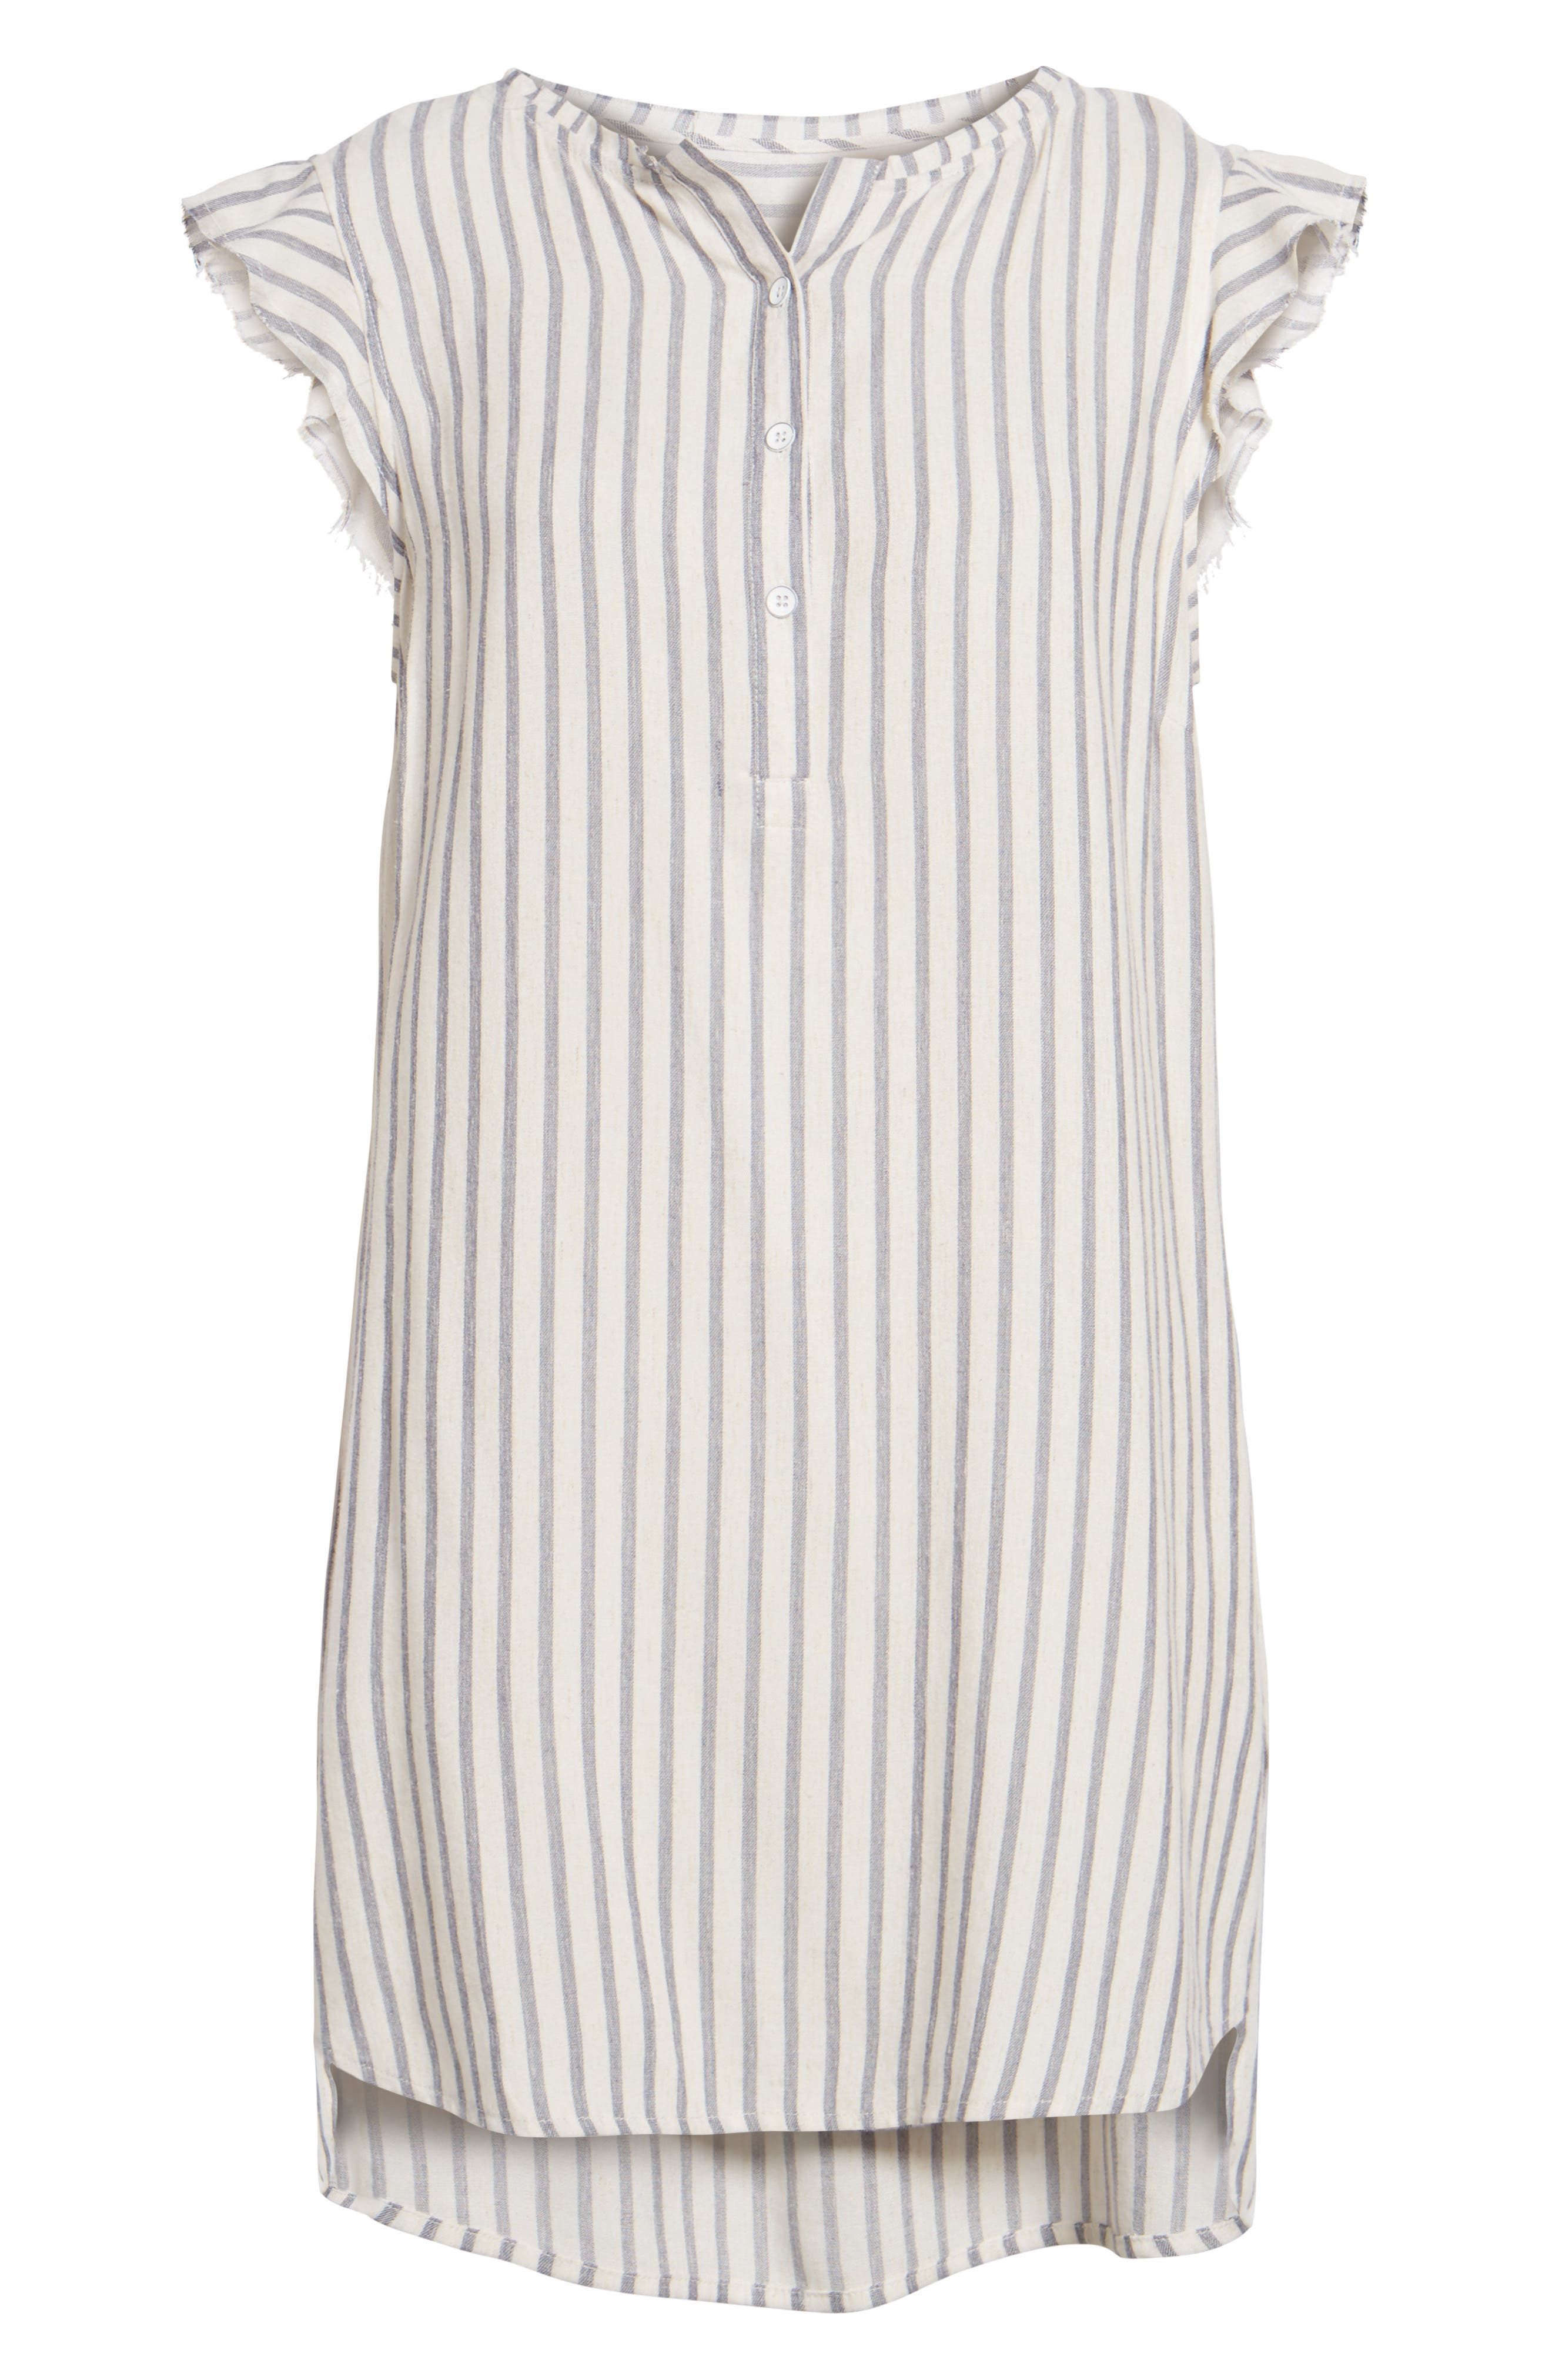 Stripe Ruffle Sleeve Shift Dress,                             Alternate thumbnail 7, color,                             900